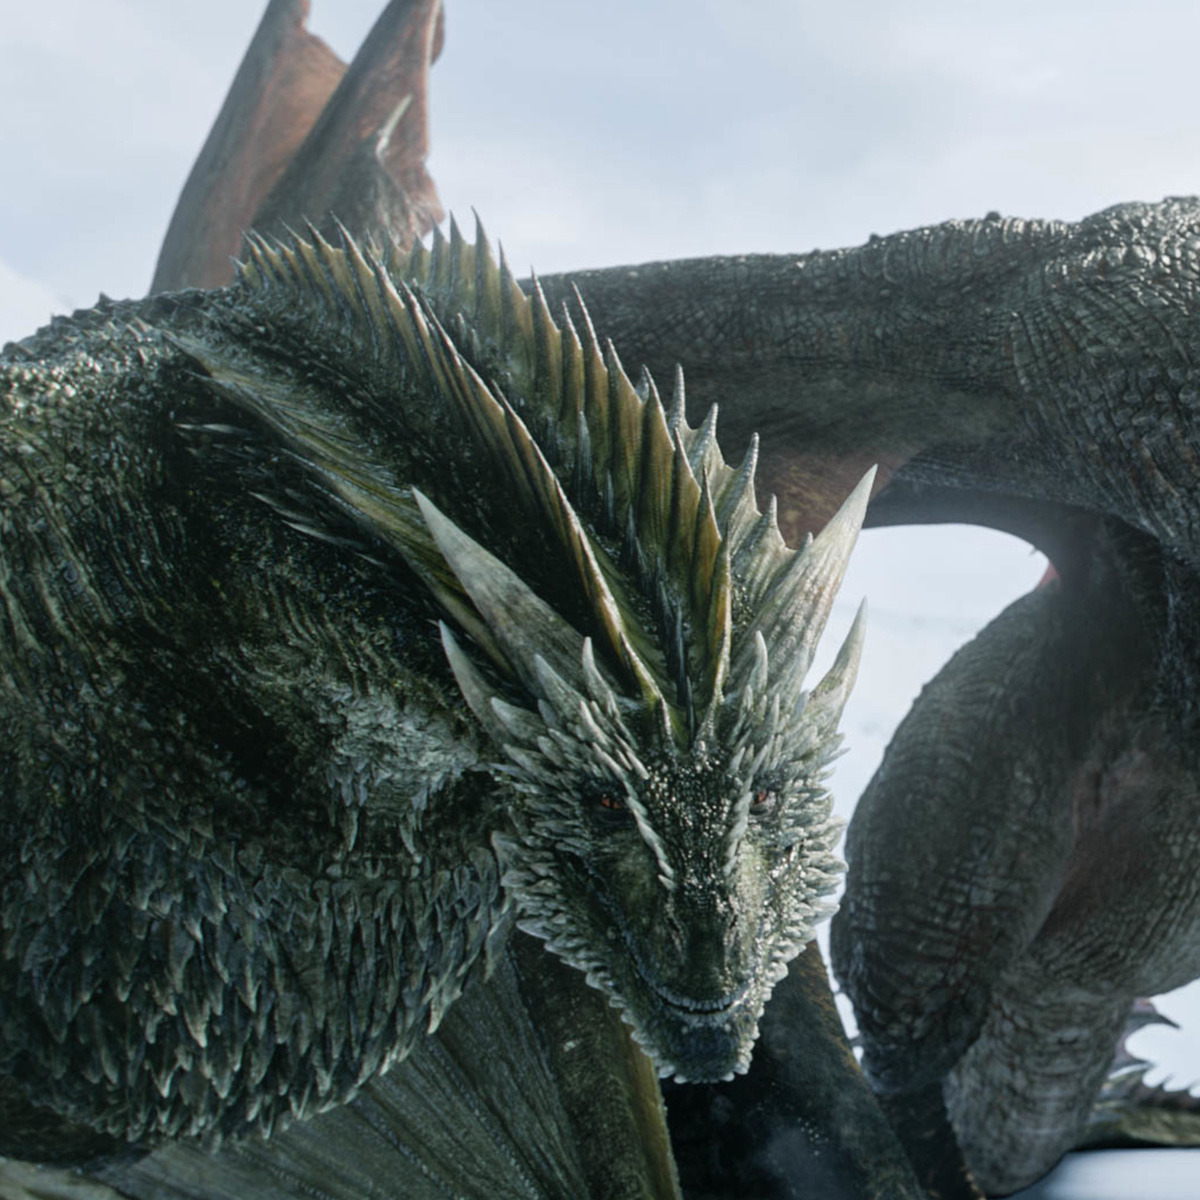 Game of Thrones Prequel House of the Dragon Shares First Look at Its Fire-Breathing Stars